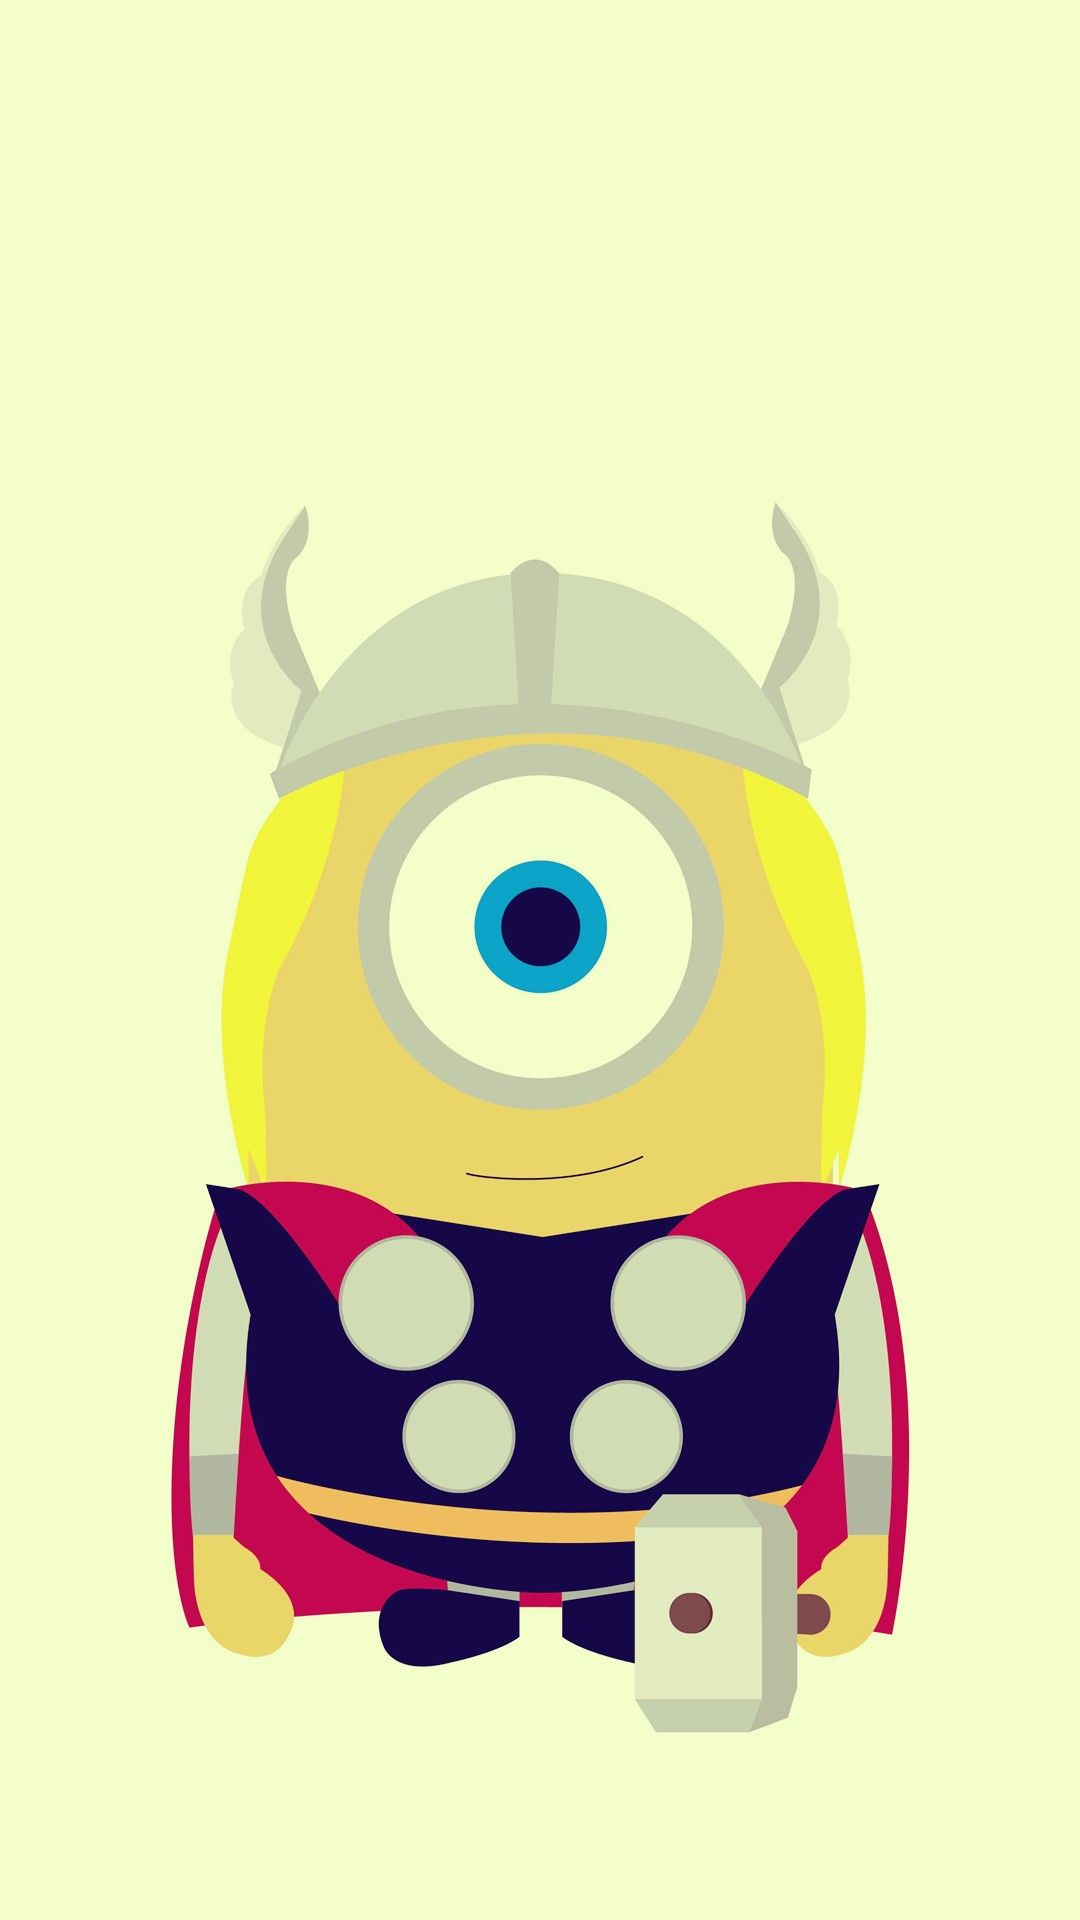 Funny Thor Minion Avengers Iphone 6 Plus Wallpaper HD   2014 Halloween,  Despicable Me #